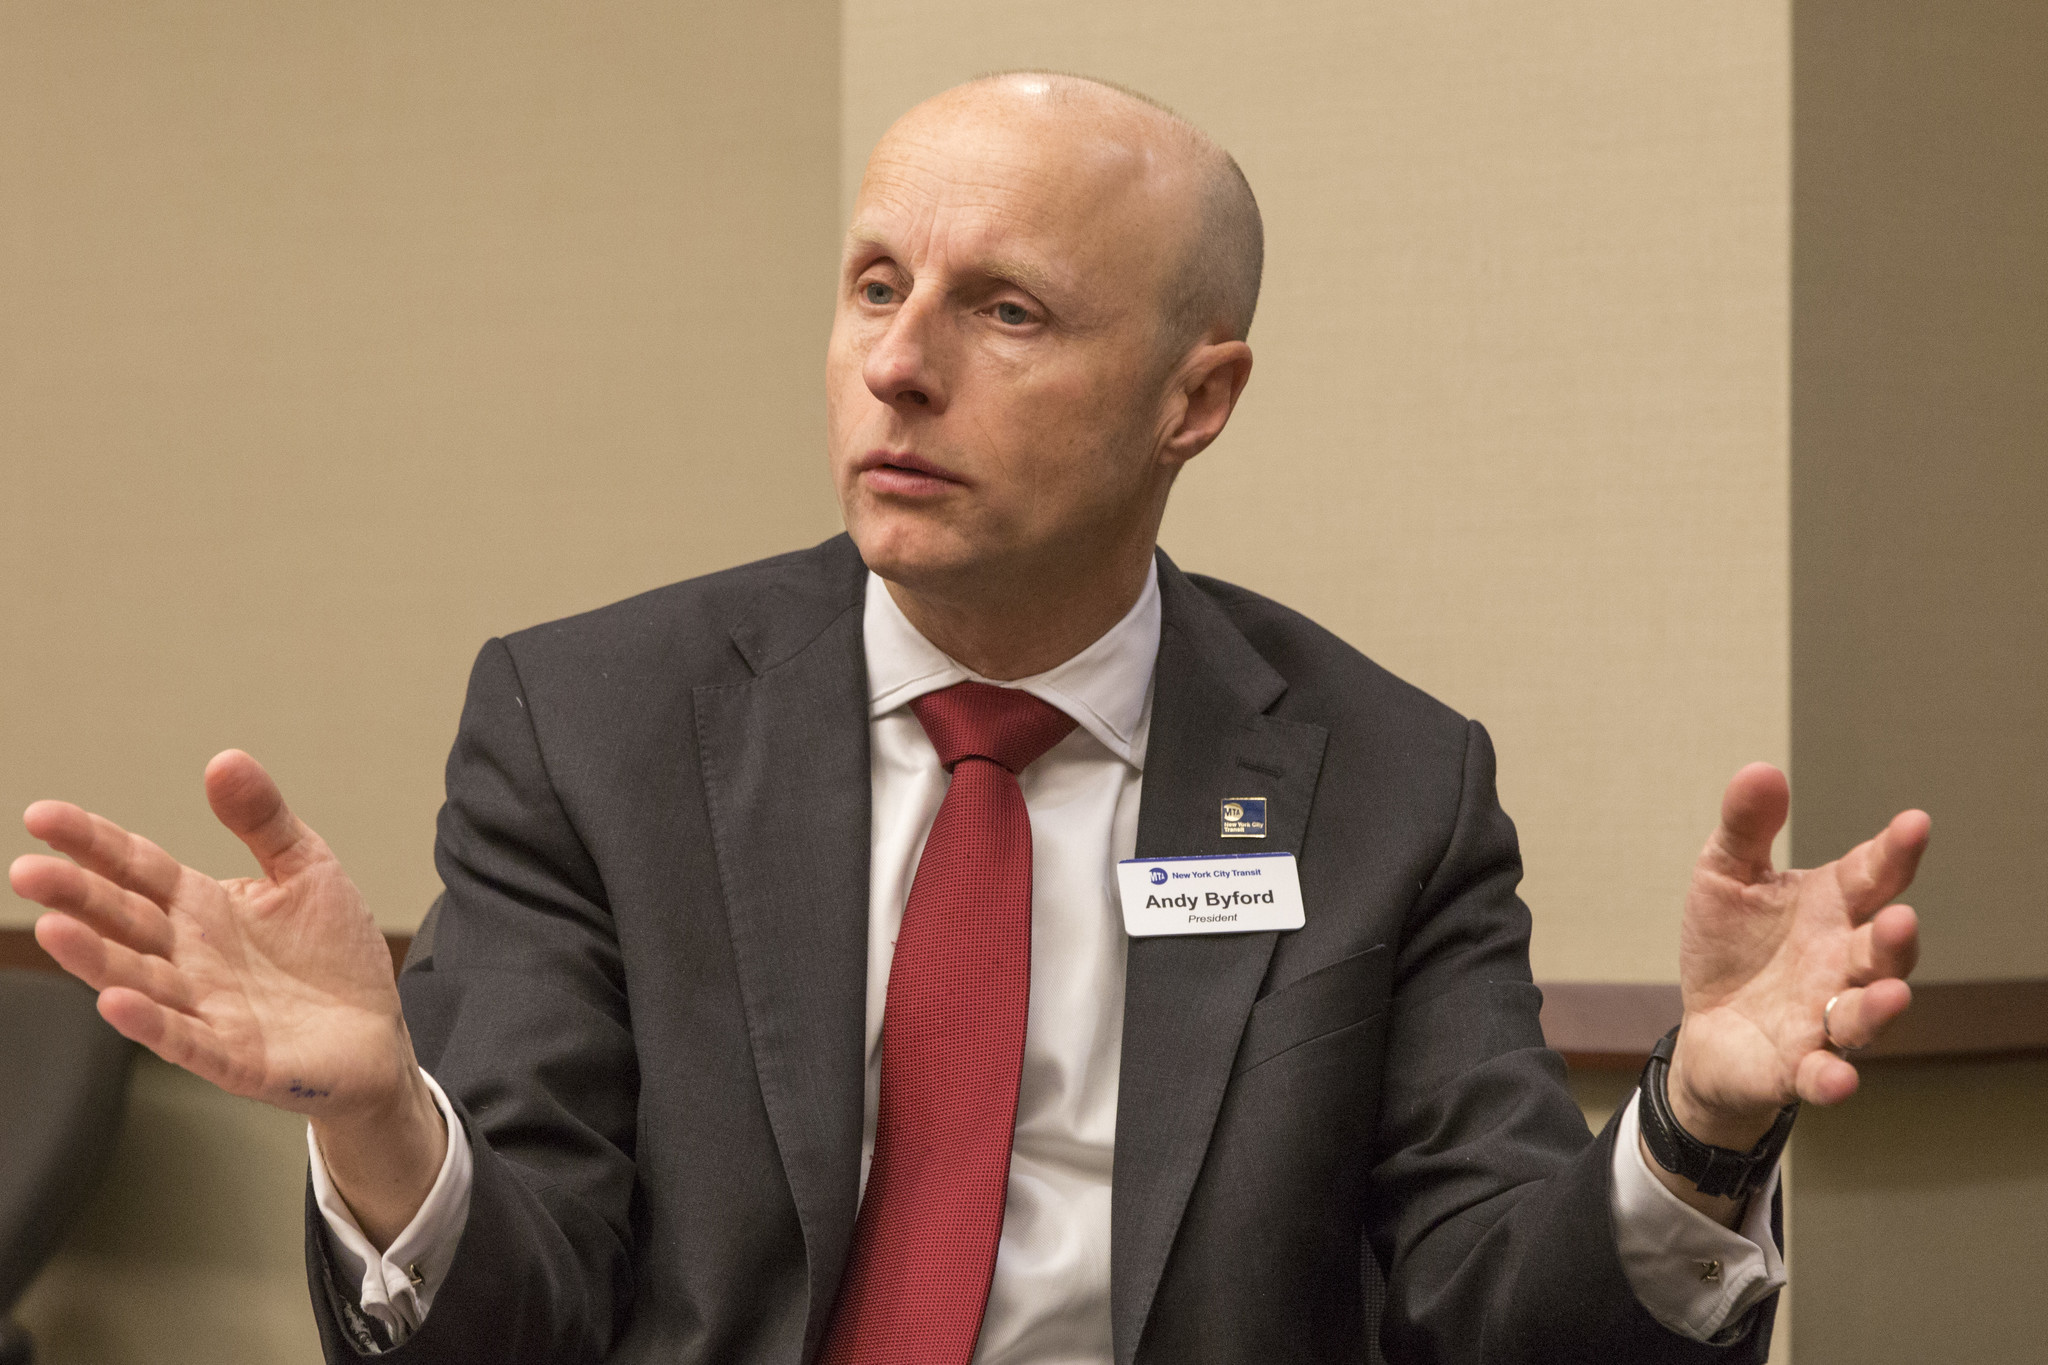 Andy Byford resigns from the MTA